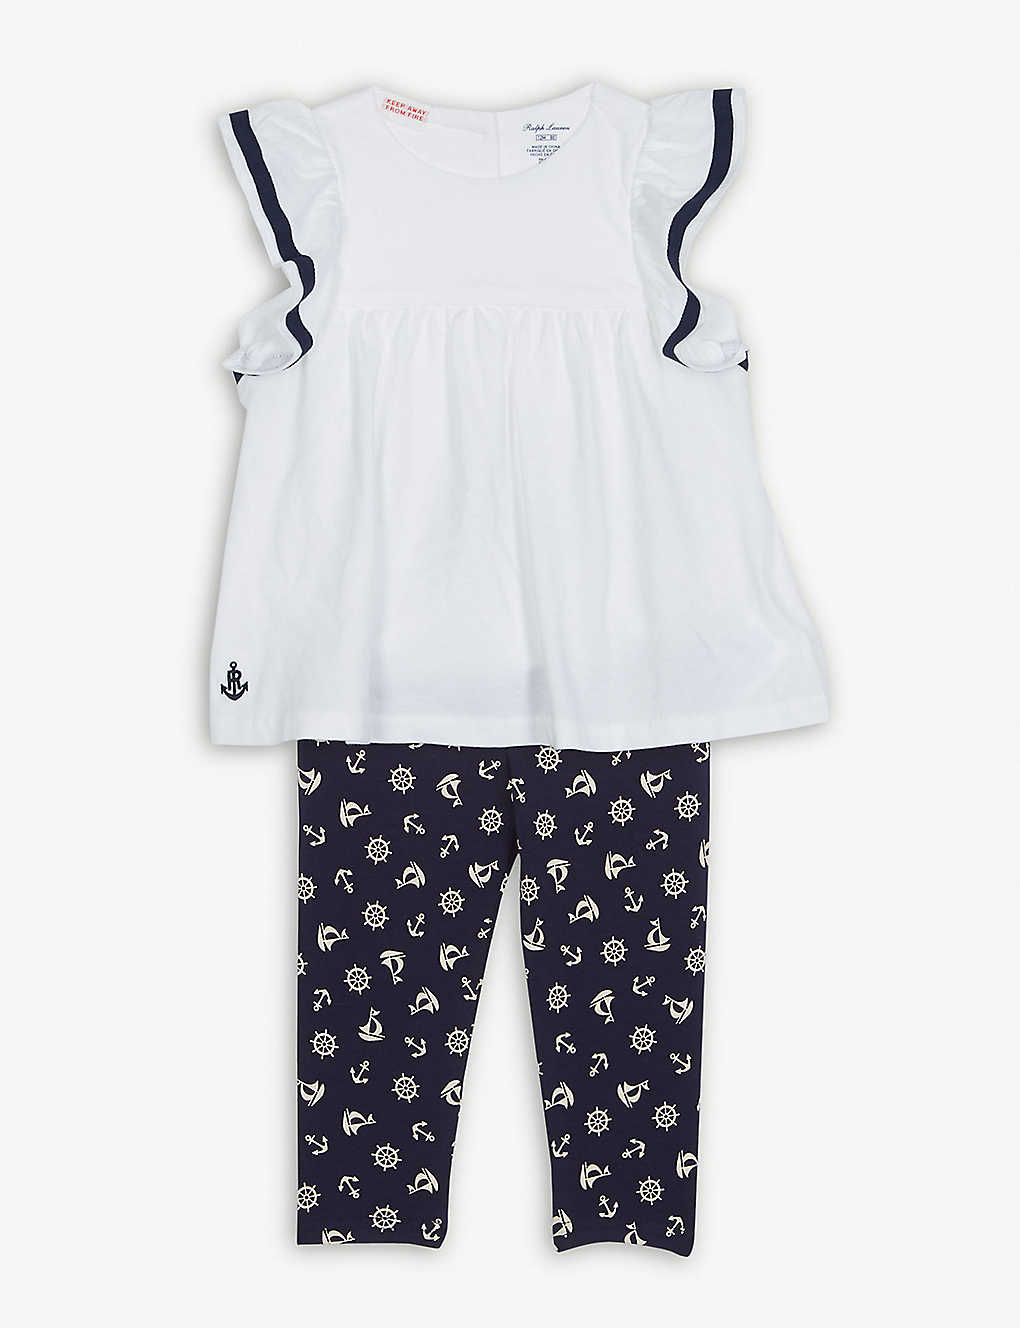 8467fdaf484ae9 RALPH LAUREN - Nautical blouse and leggings set 6-24 months ...